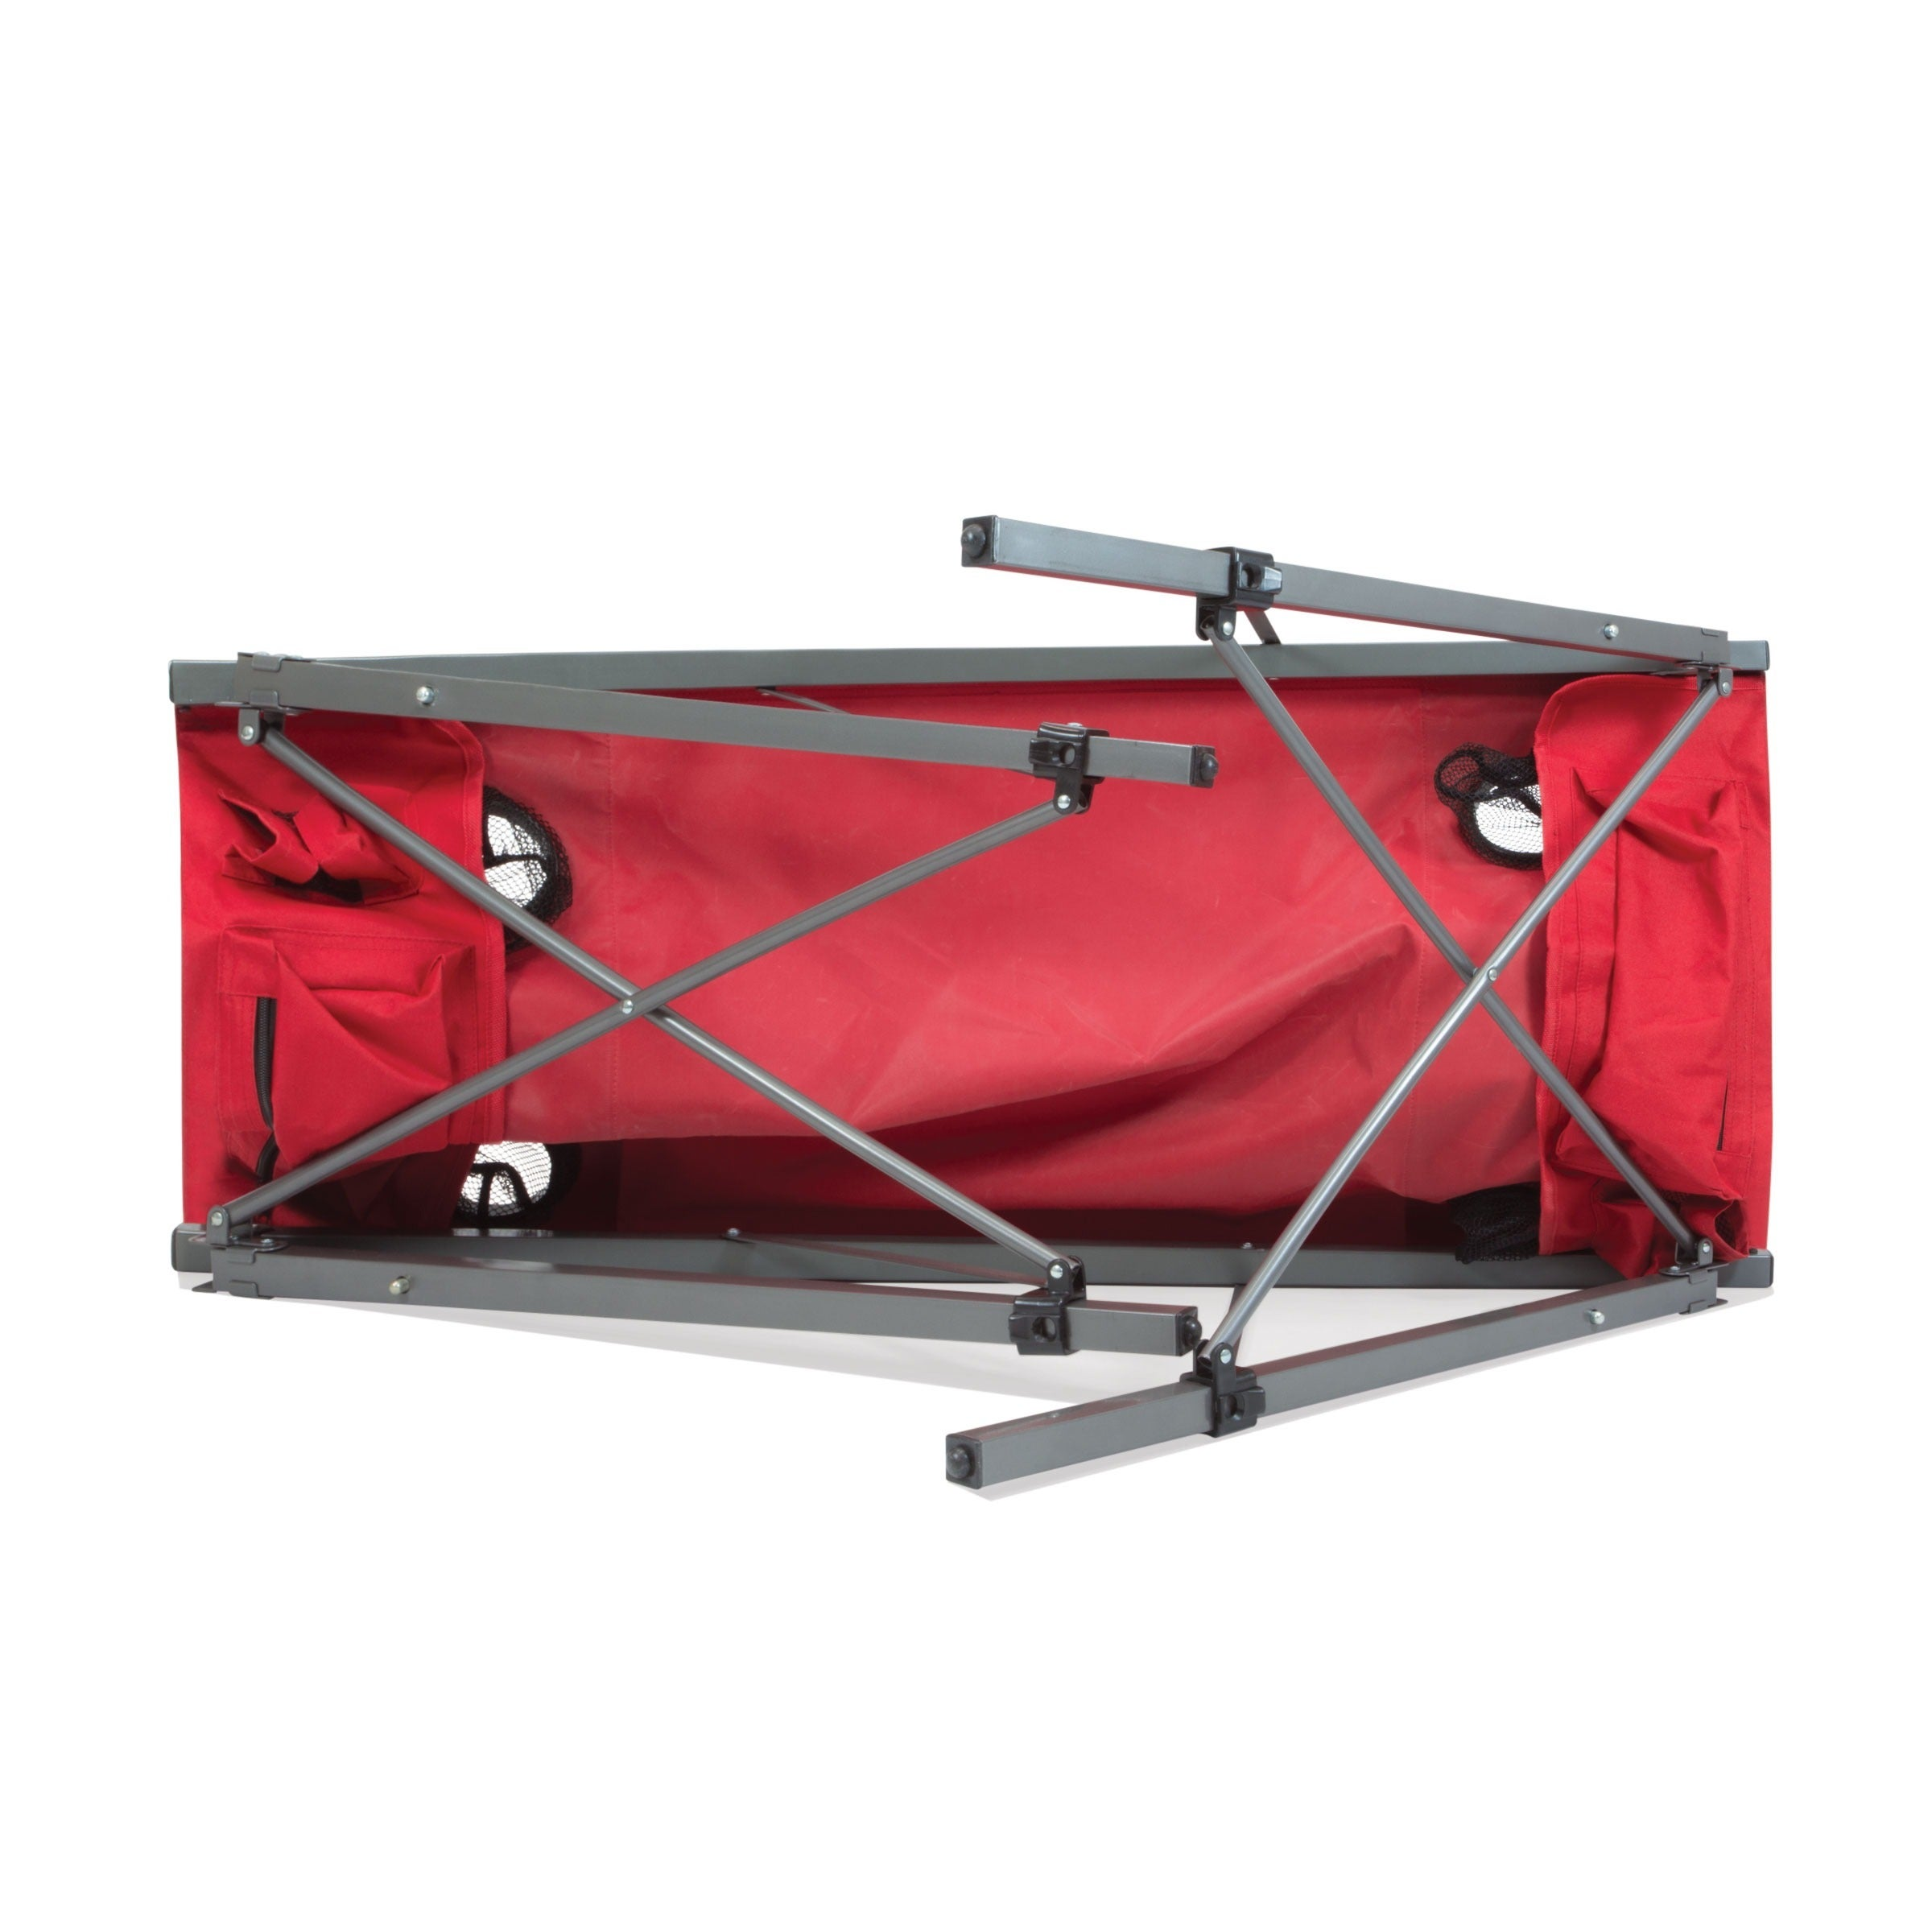 Shop Picnic Time Folding Travel Table With Carrying Bag Free - Travel pool table